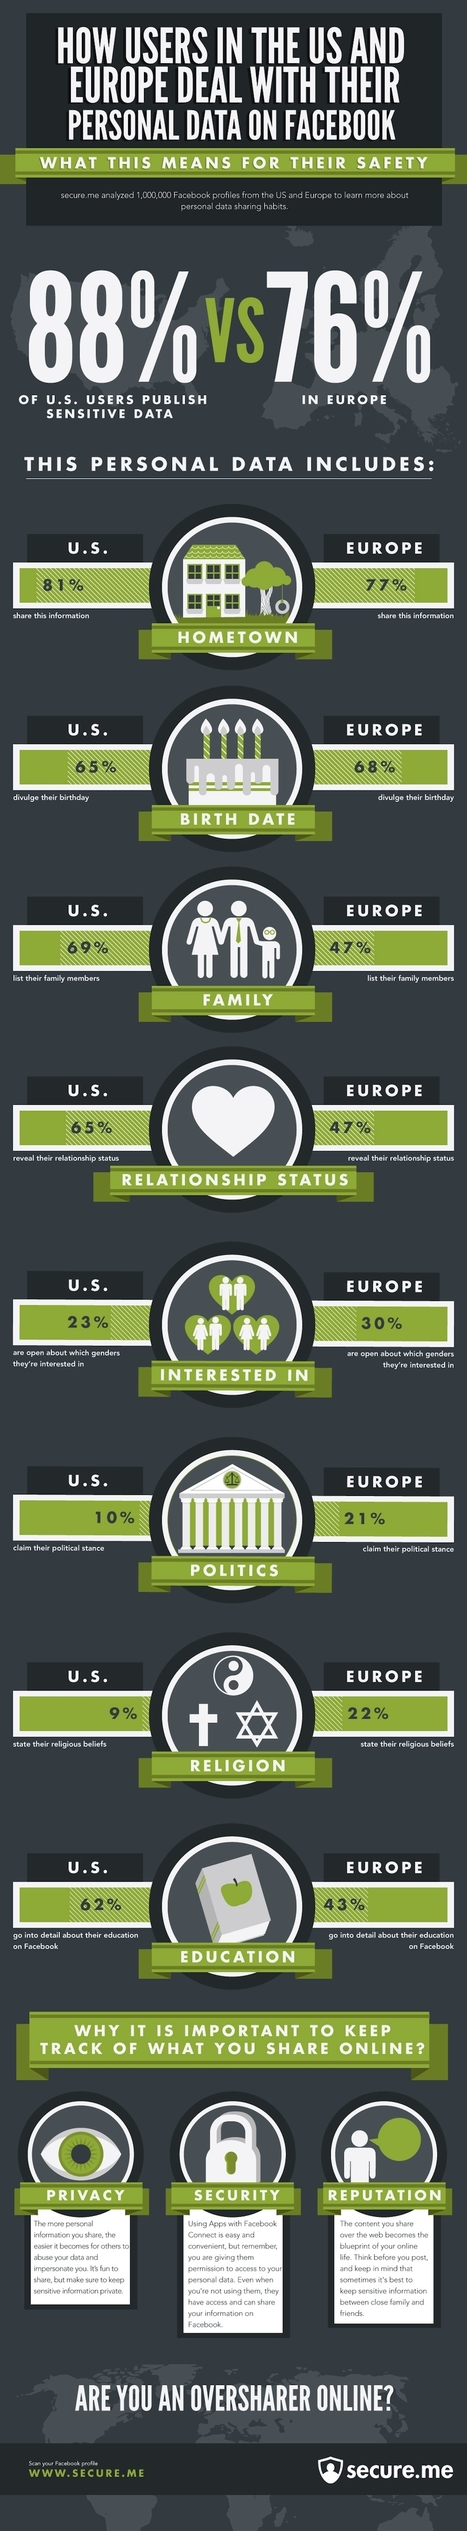 INFOGRAPHIC: Facebook Sharing Habits, U.S. Vs. Europe - AllFacebook | Social Media (network, technology, blog, community, virtual reality, etc...) | Scoop.it